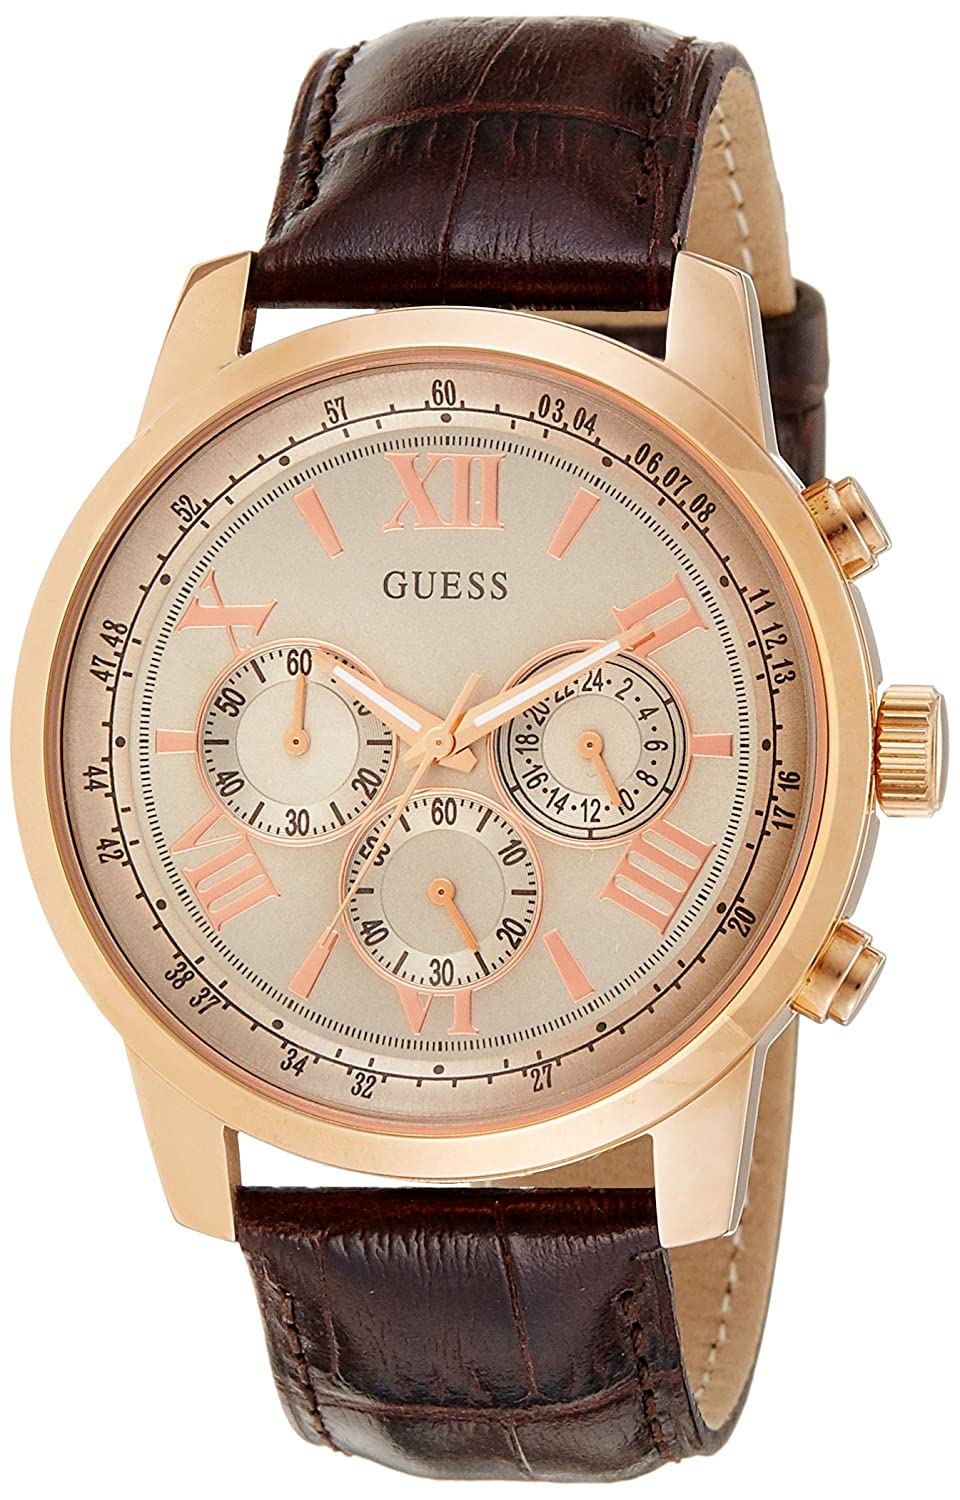 Amazon.com: GENUINE GUESS Watch CLASSIC Male Chronograph W0380G4: Watches